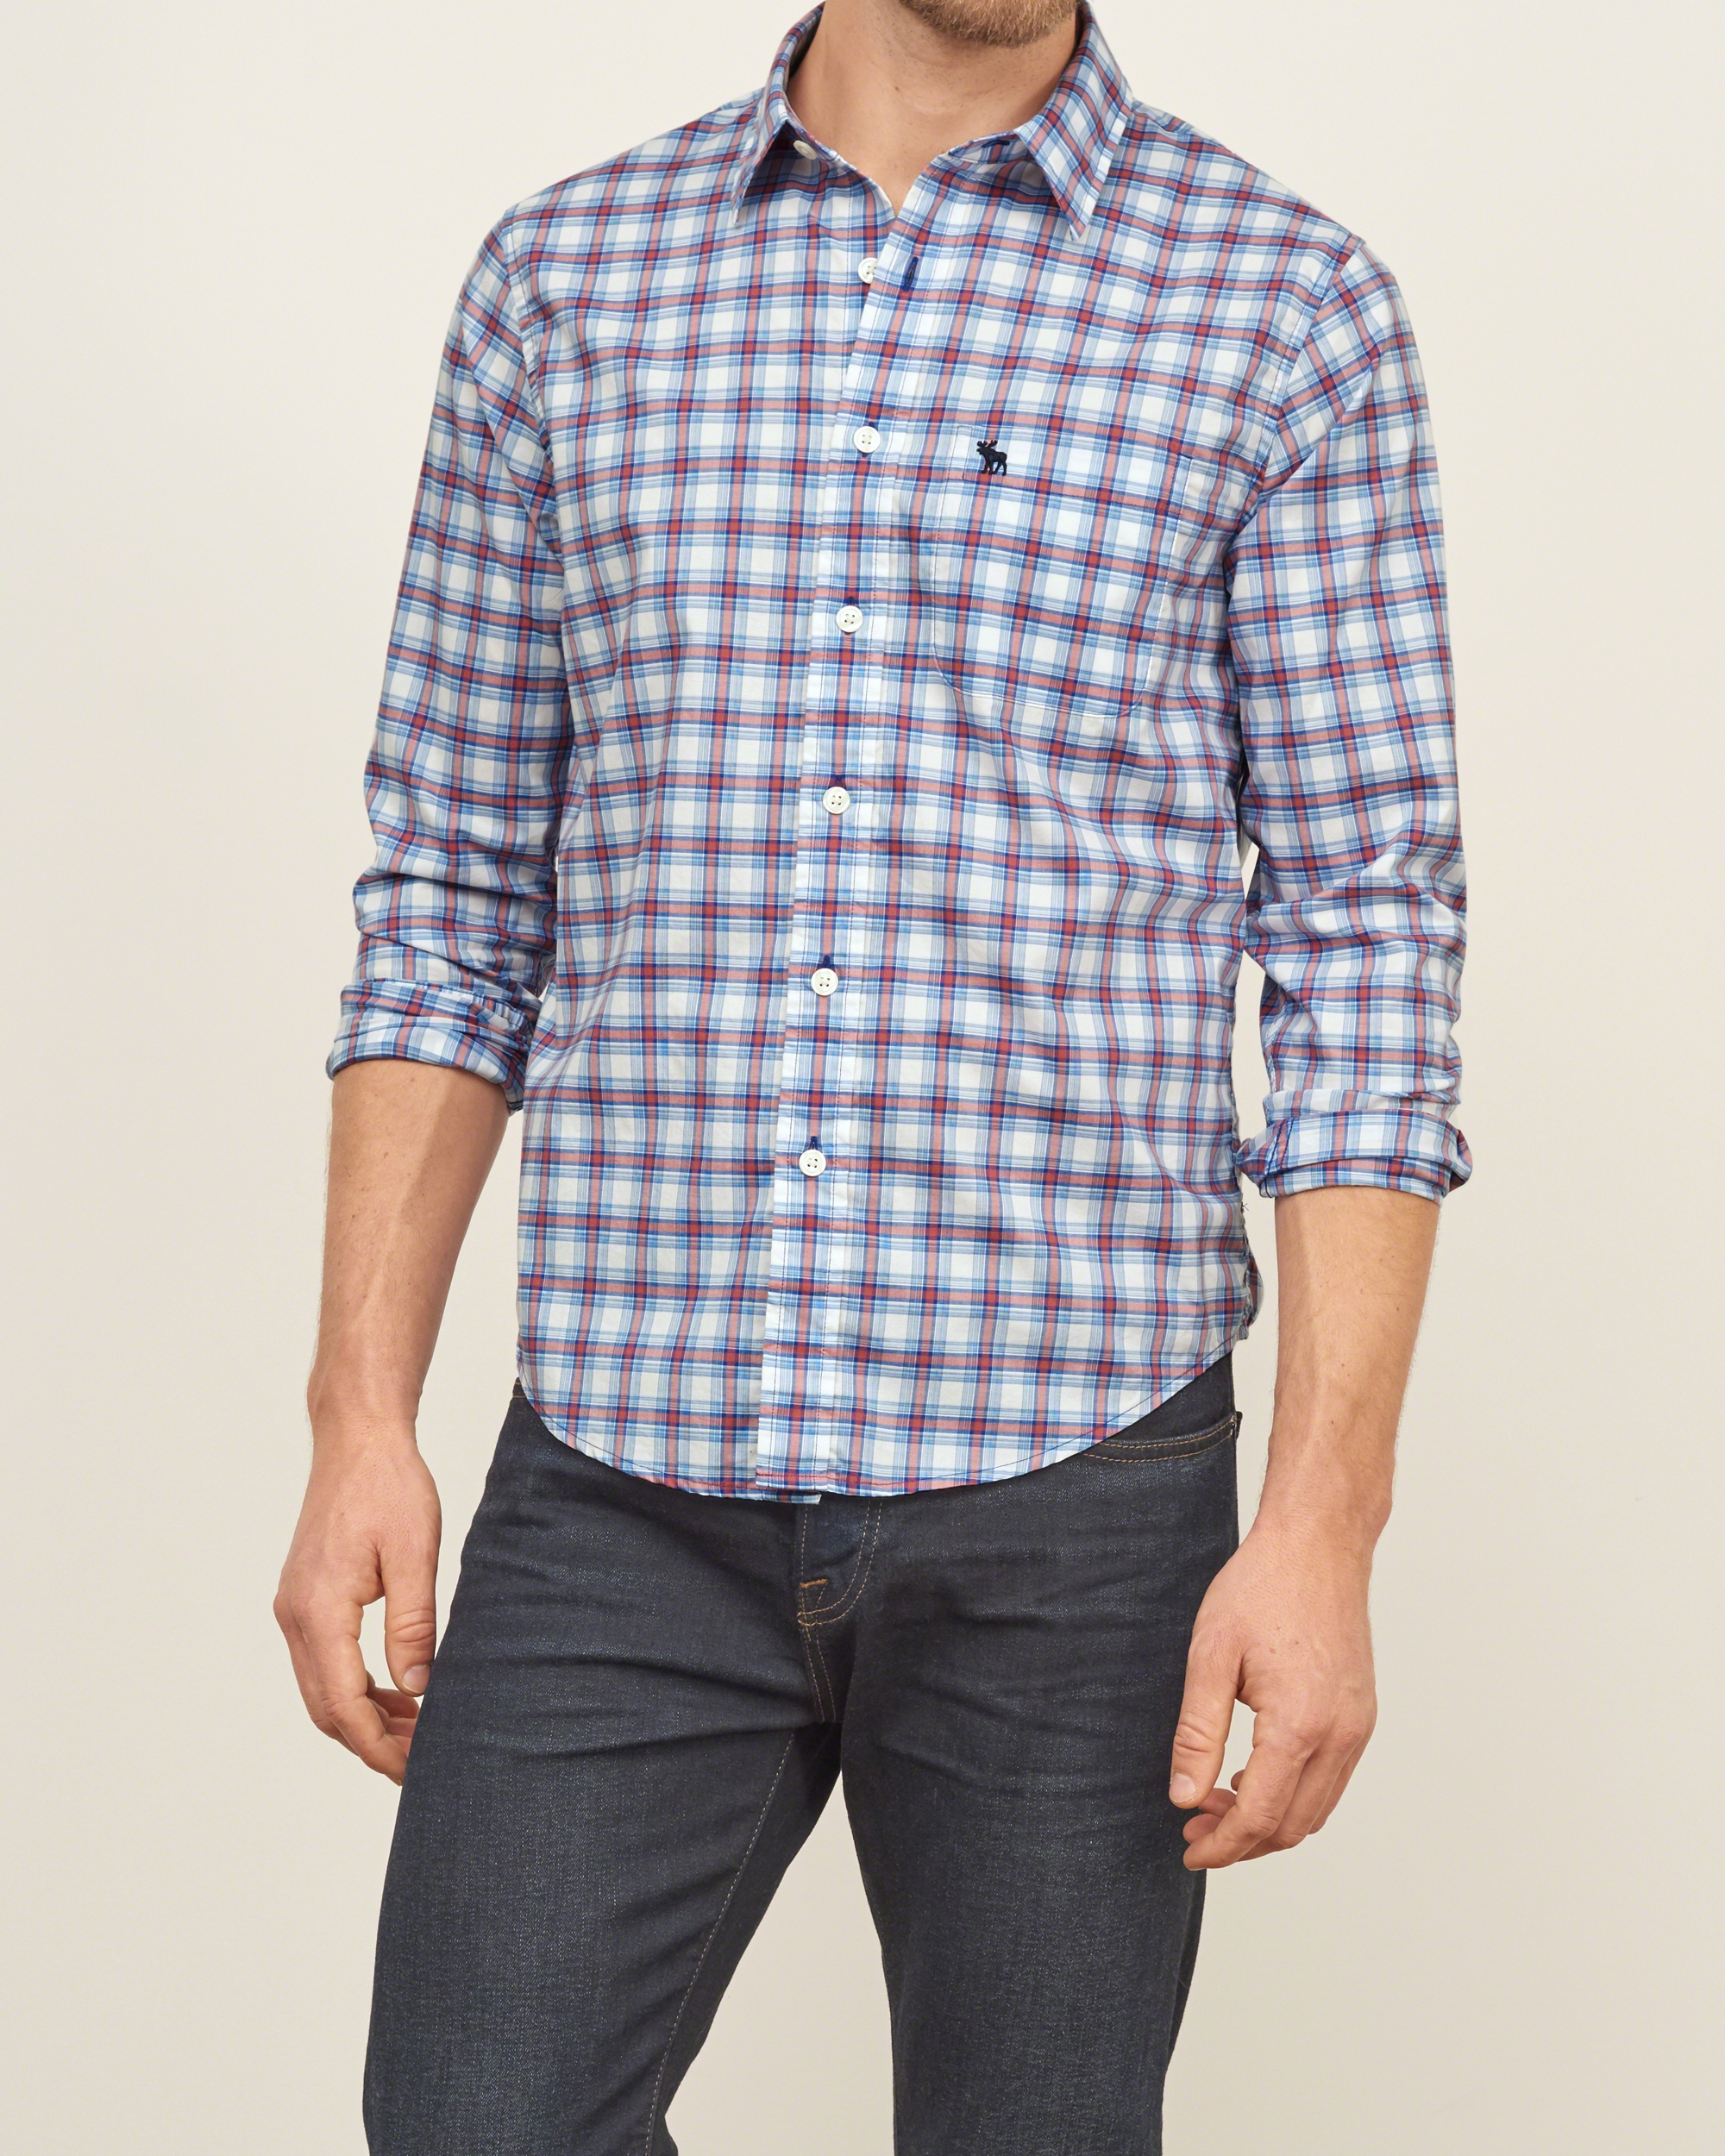 abercrombie amp fitch iconic plaid shirt in blue for men lyst